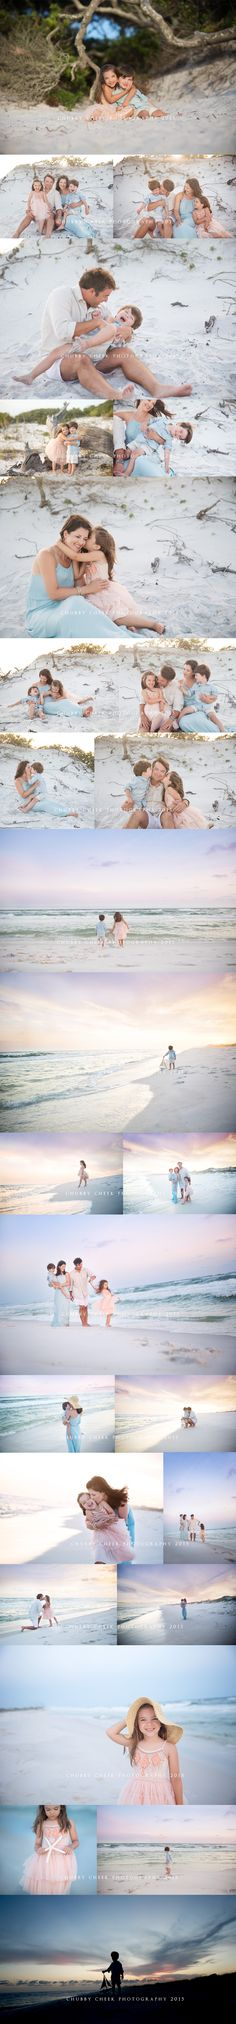 well in case you missed it watercolor florida tried to woo meet a few weeks ago hahahahaha! no but really i was given the opportunity to fly out to watercolor florida to shoot two family sessions for two BEAUTIFUL FAMILIES! Family Beach Portraits, Family Beach Pictures, Family Posing, Family Pics, Beach Photography, Amazing Photography, Group Photography, Travel Photography, Chubby Cheek Photography